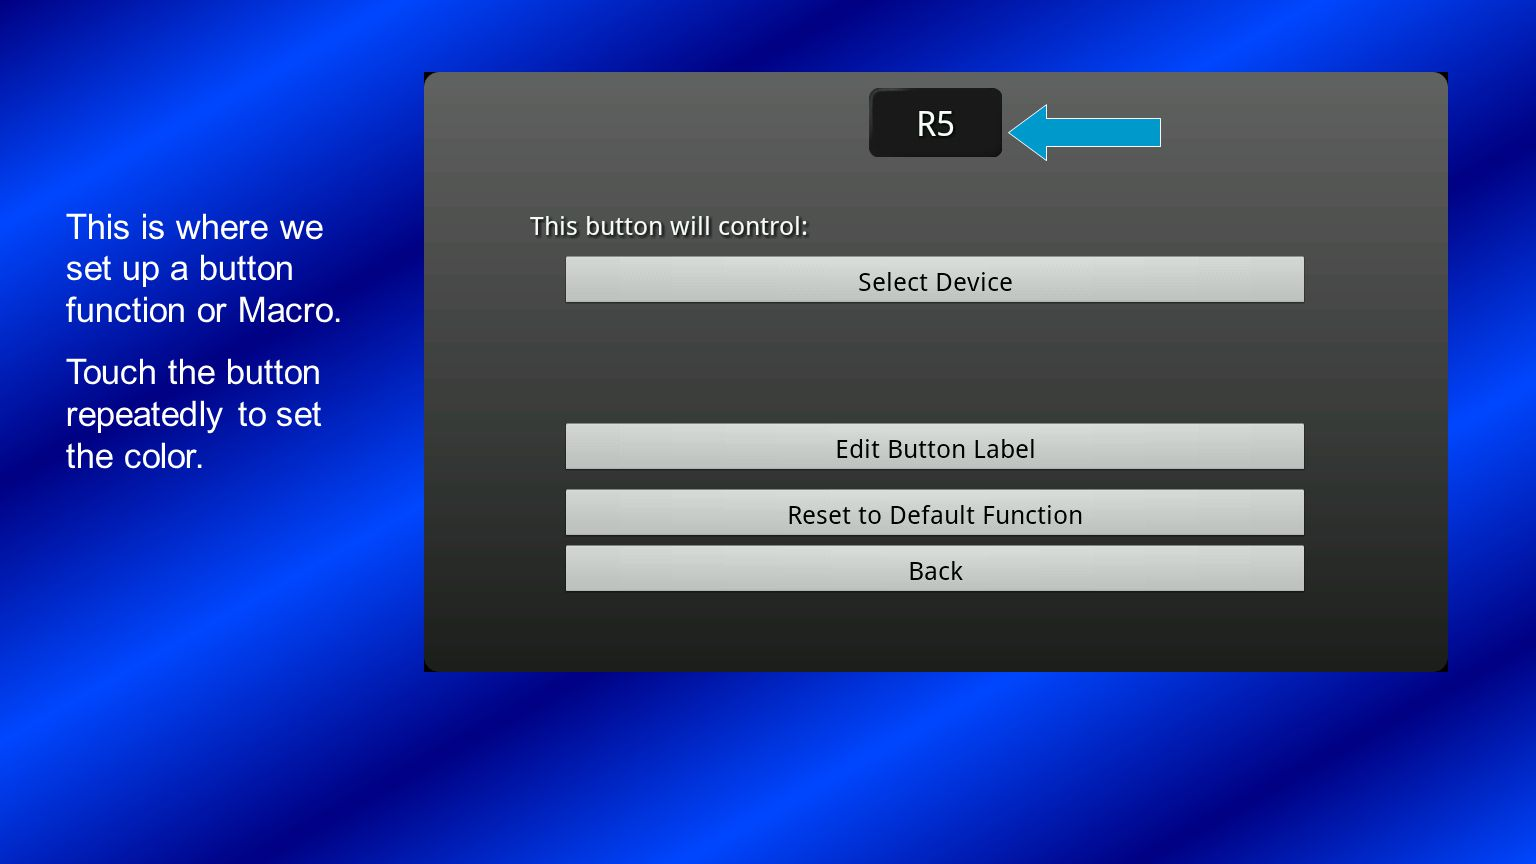 This is where we set up a button function or Macro. Touch the button repeatedly to set the color.